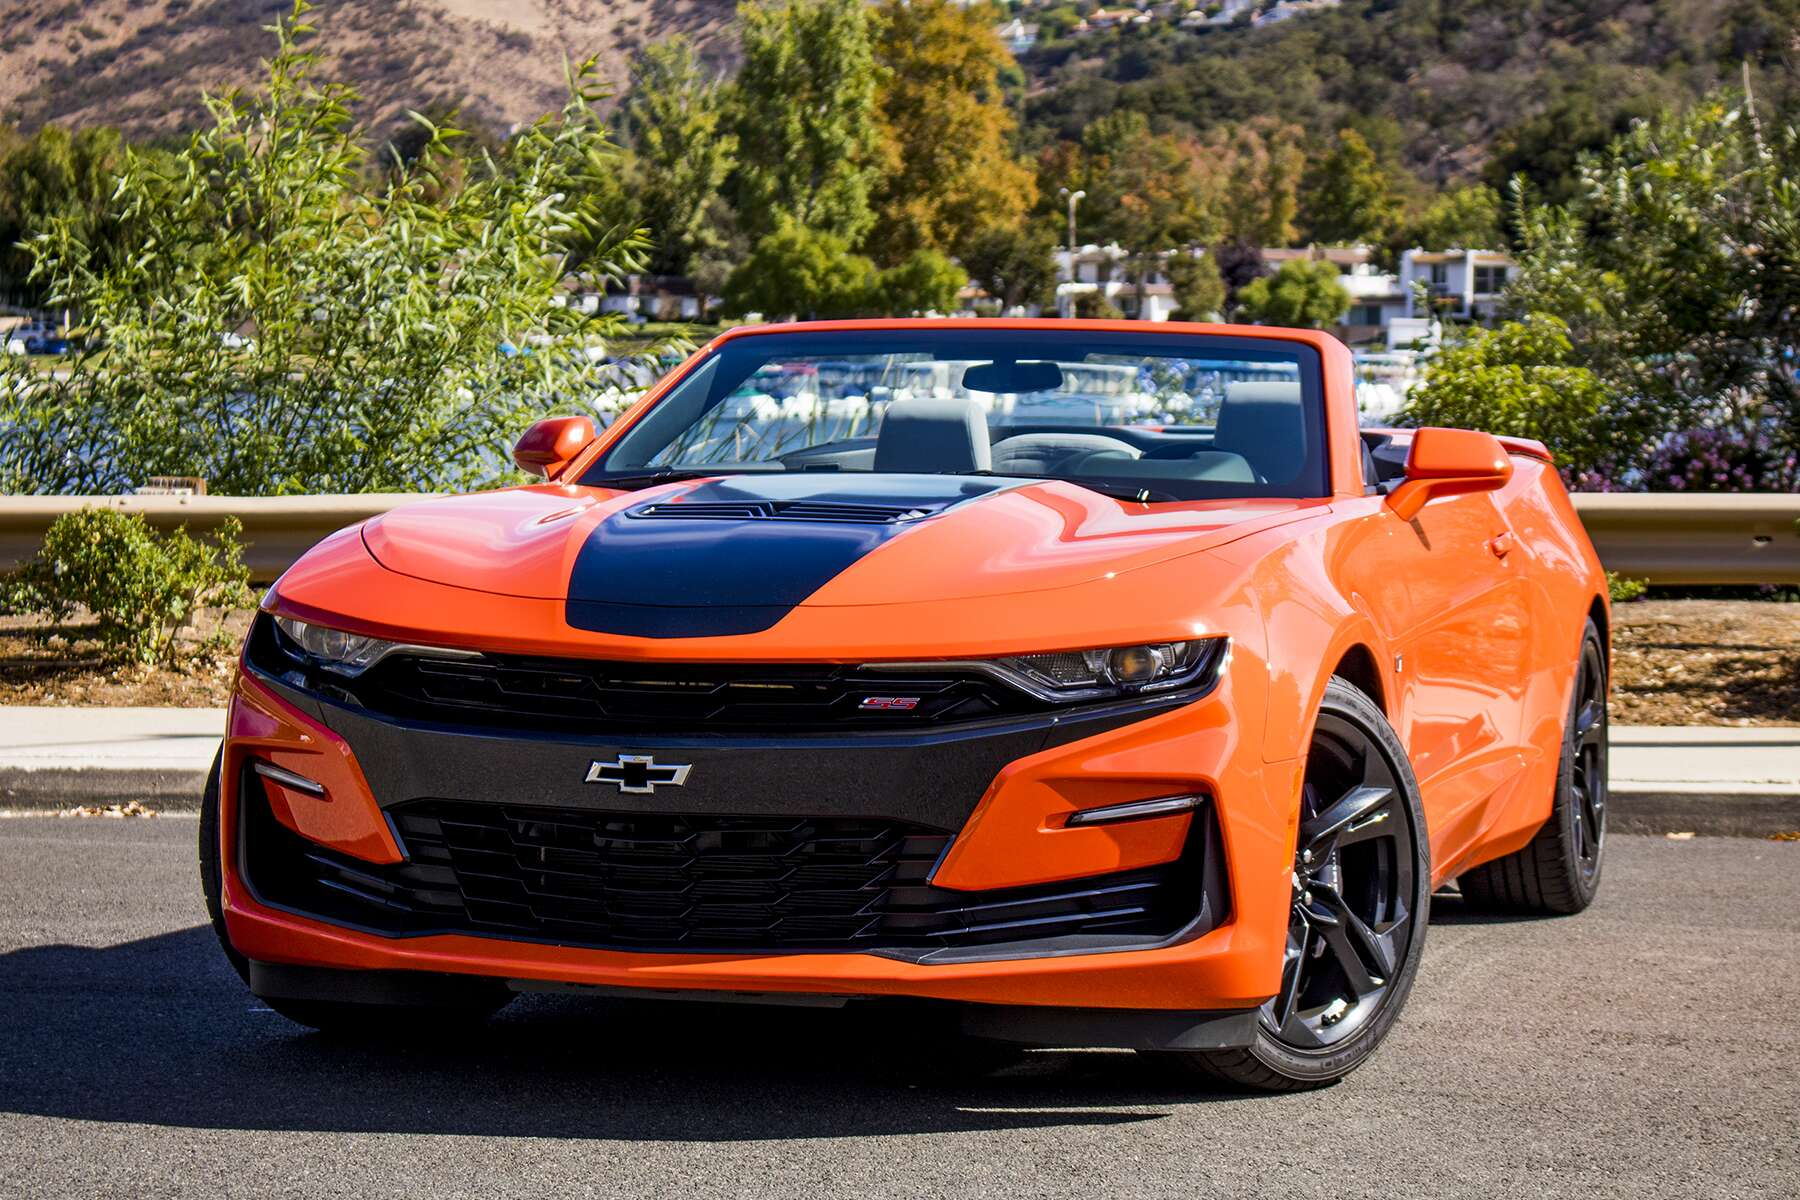 2019 Chevrolet Camaro Ss Wallpaper: 2019 Chevrolet Camaro SS First Drive Review: 10-Speed